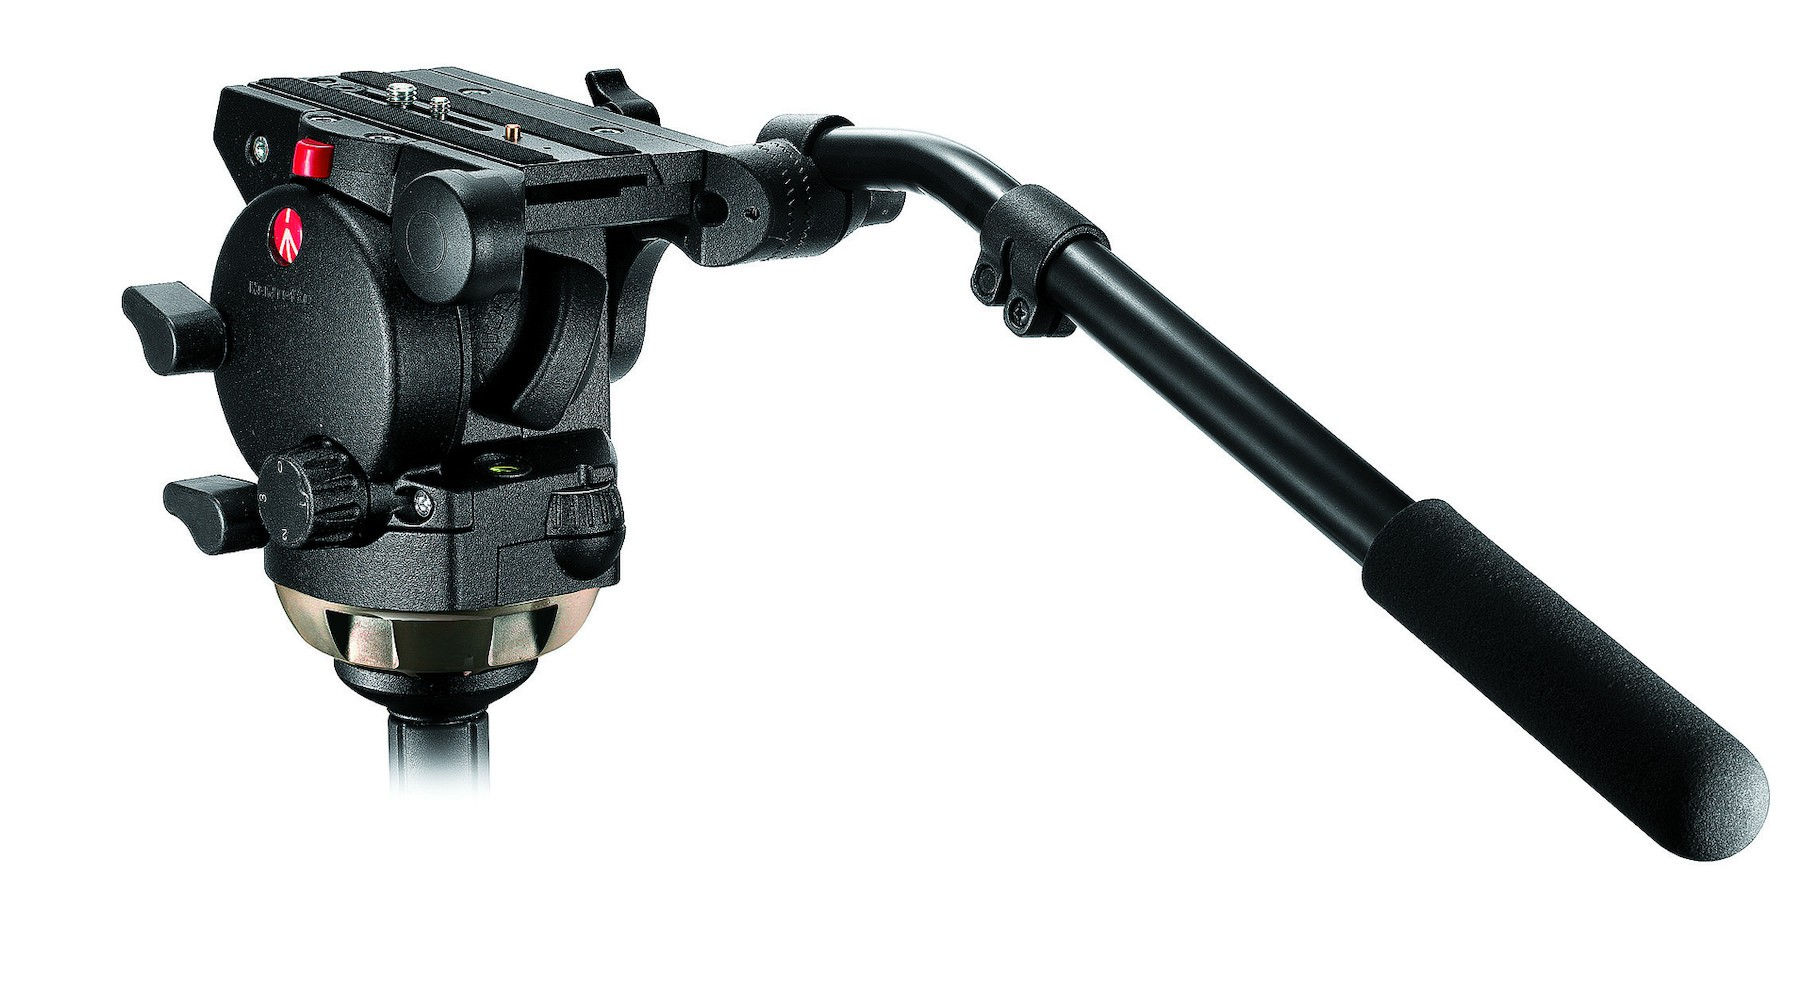 MANFROTTO 526 PROFESSIONAL HEAD (16Kg)